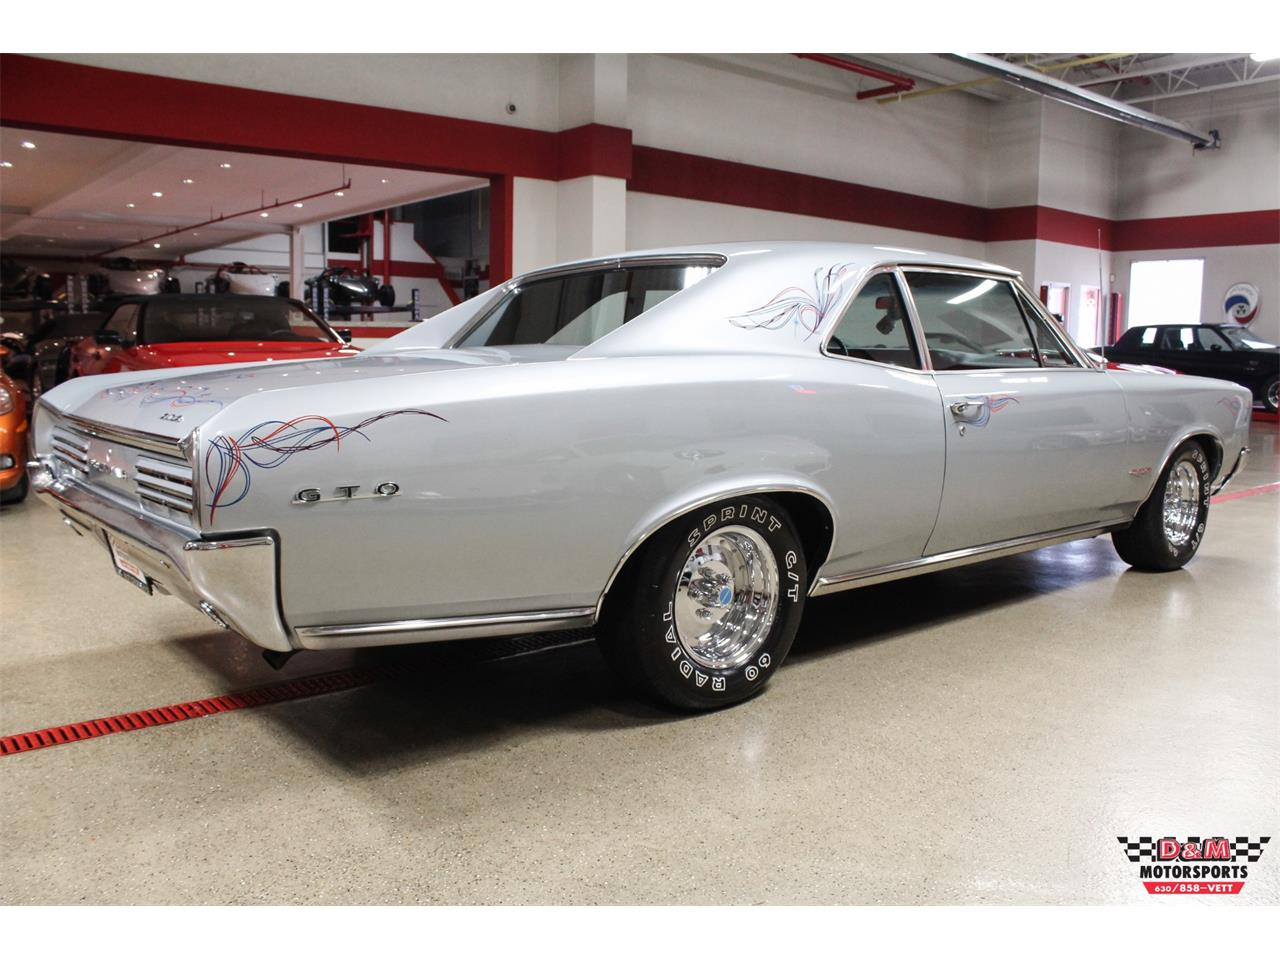 Large Picture of 1966 GTO - $39,995.00 Offered by D & M Motorsports - O7FS